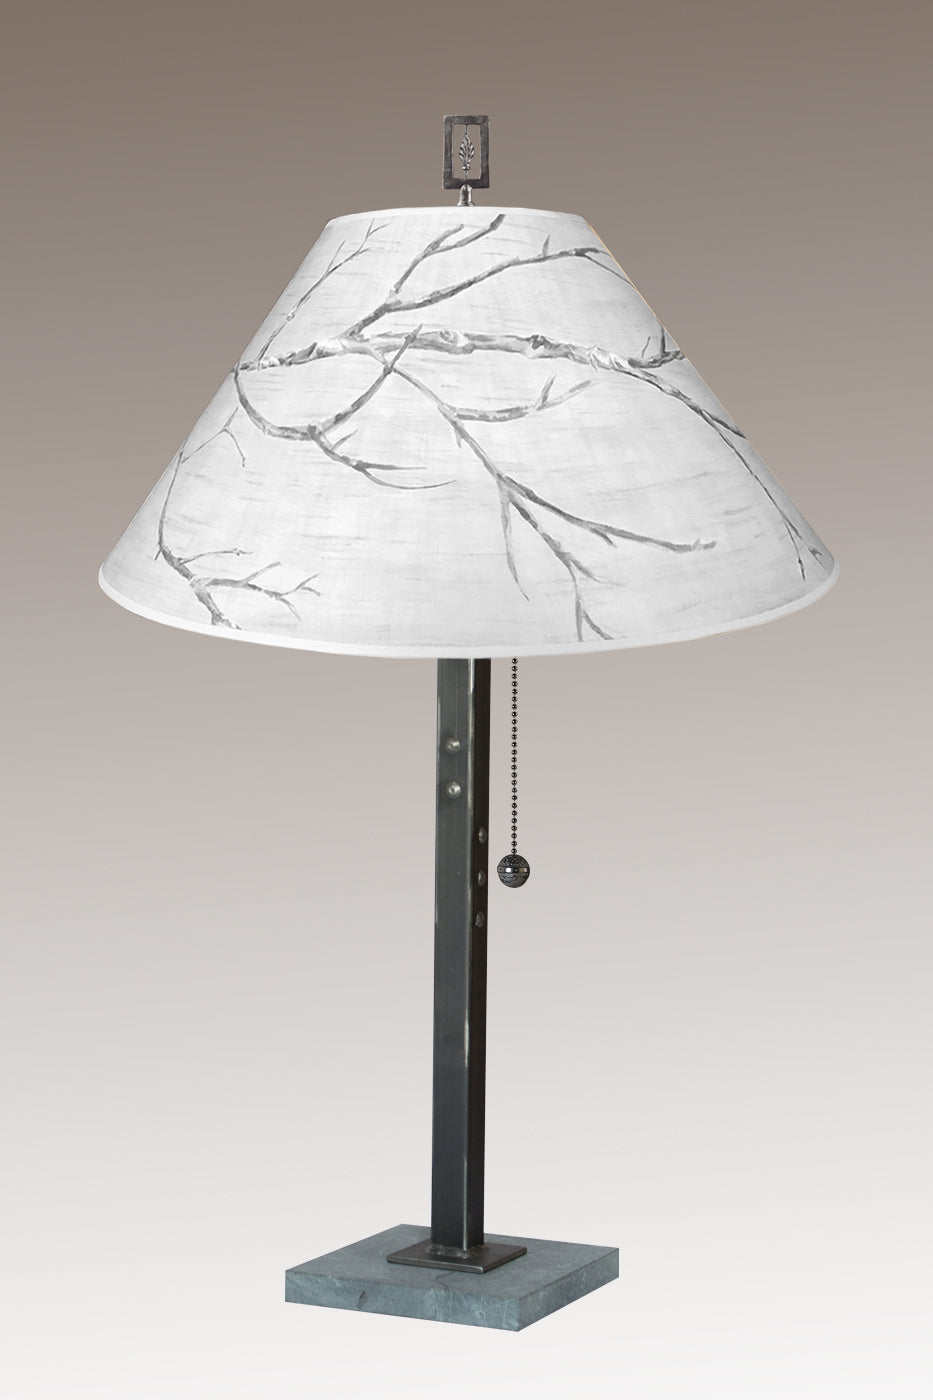 Steel Table Lamp on Italian Marble with Large Conical Shade in Sweeping Branch